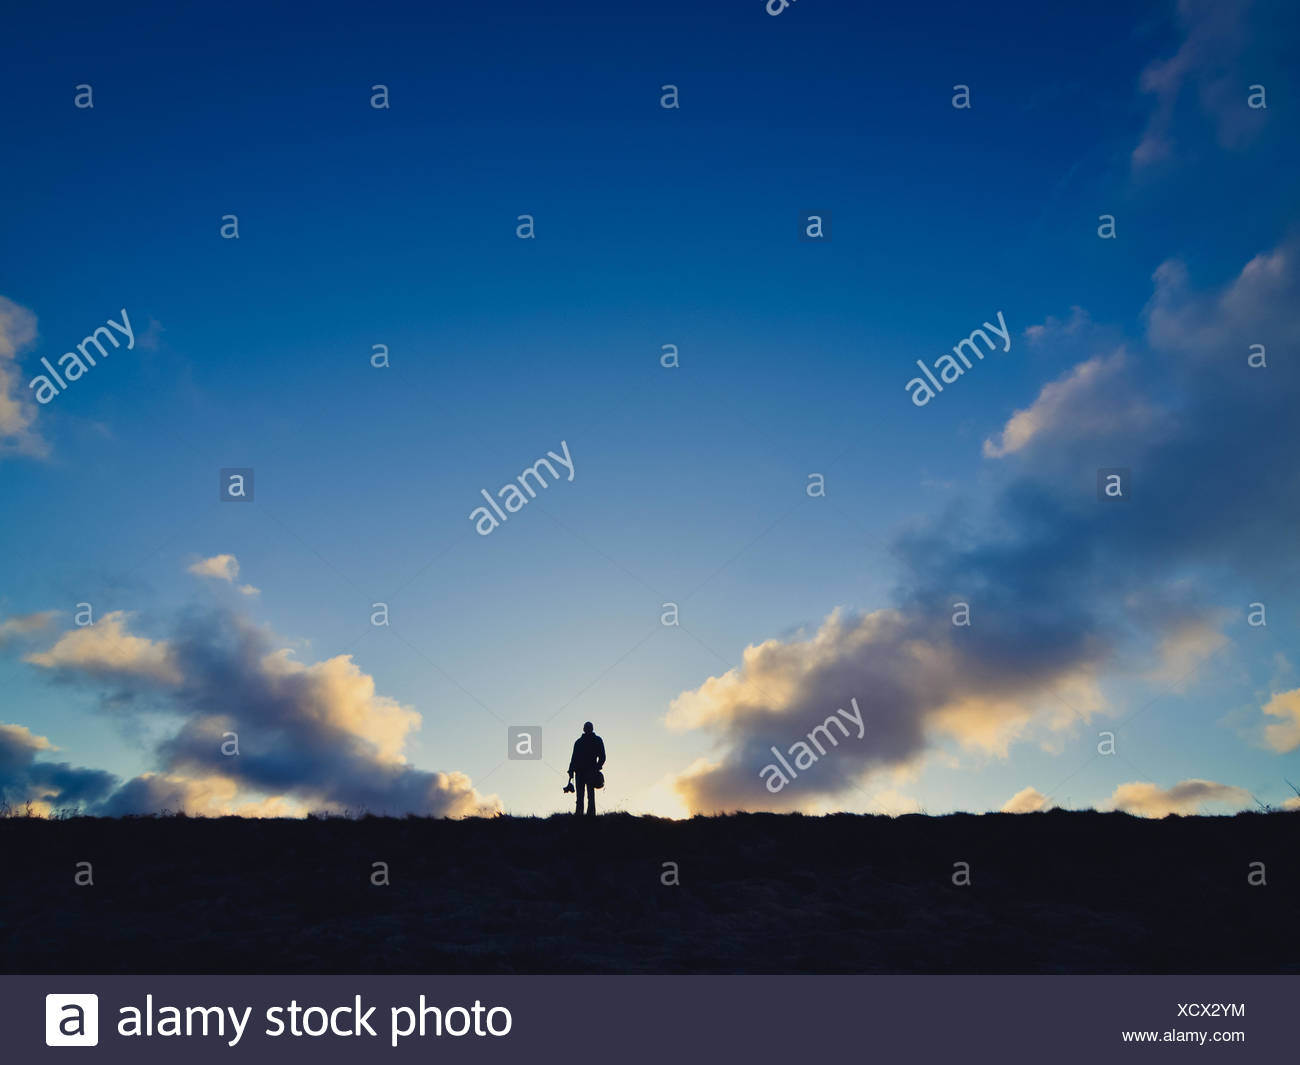 Distant View Of Silhouette Man On Field Against Sky At Sunset - Stock Image